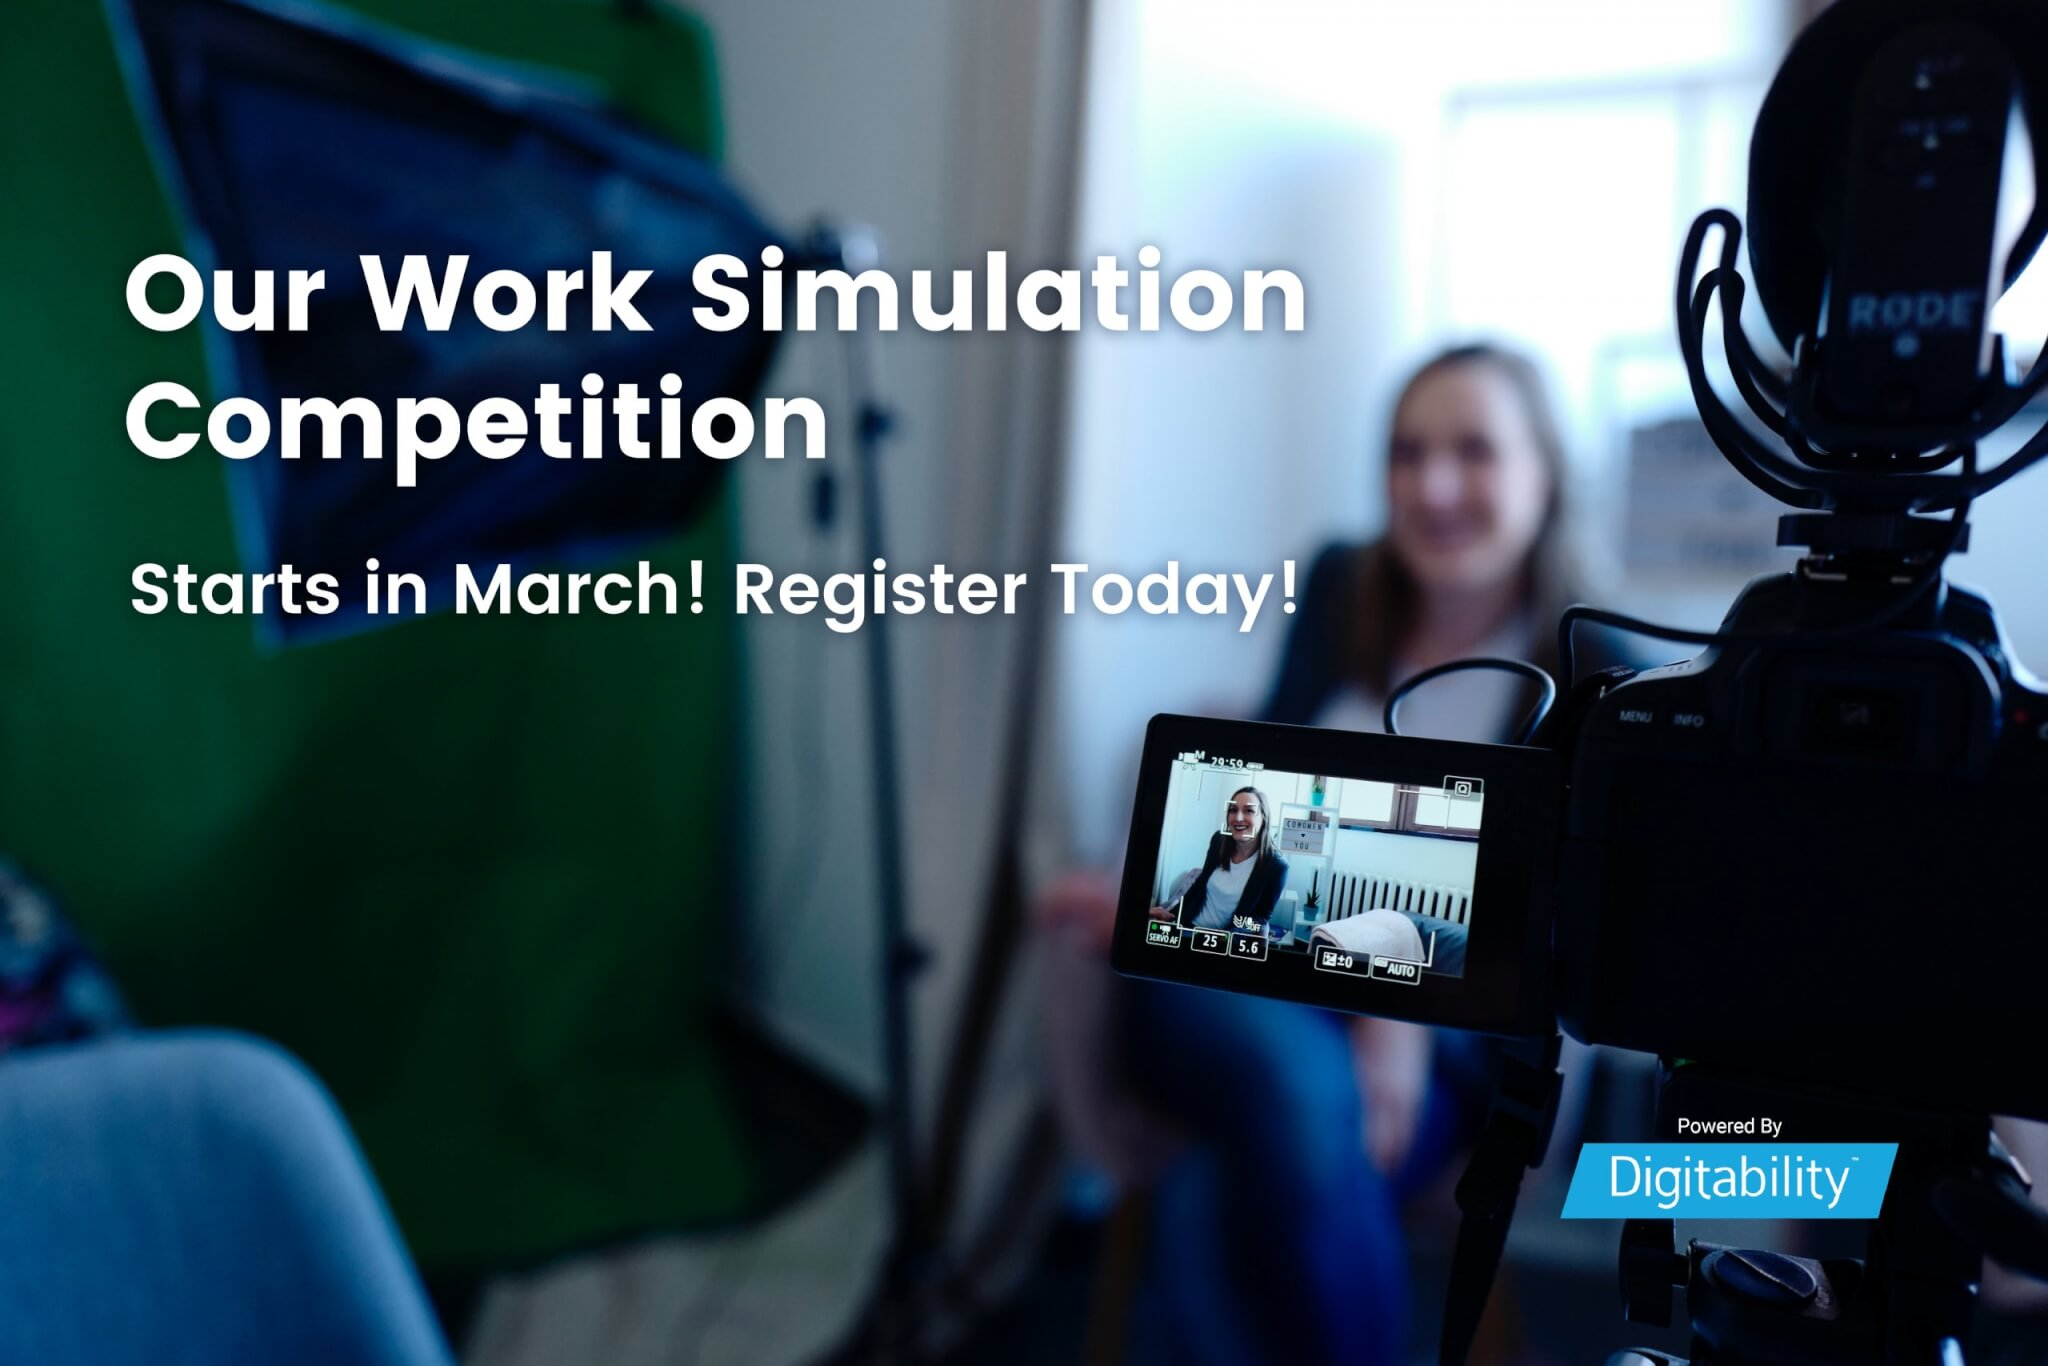 Work Simulation Competition